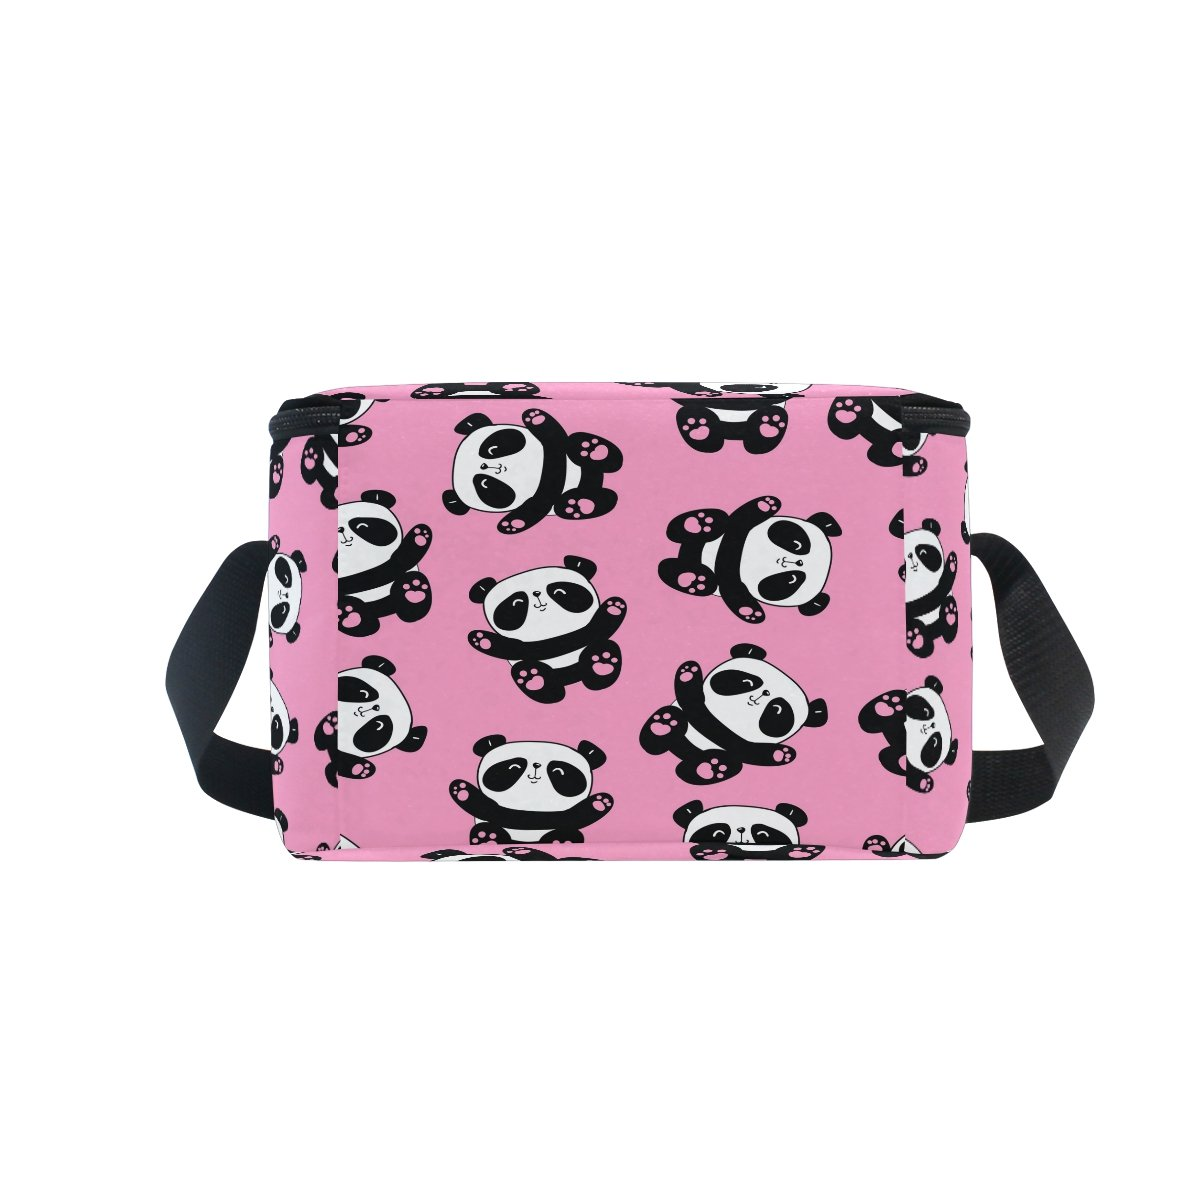 ALAZA Pink Elephant Insulated Lunch Bag Box Cooler Bag Reusable Tote Bag Outdoor Travel Picnic Bag with Shoulder Strap for Women Men Adults Kids